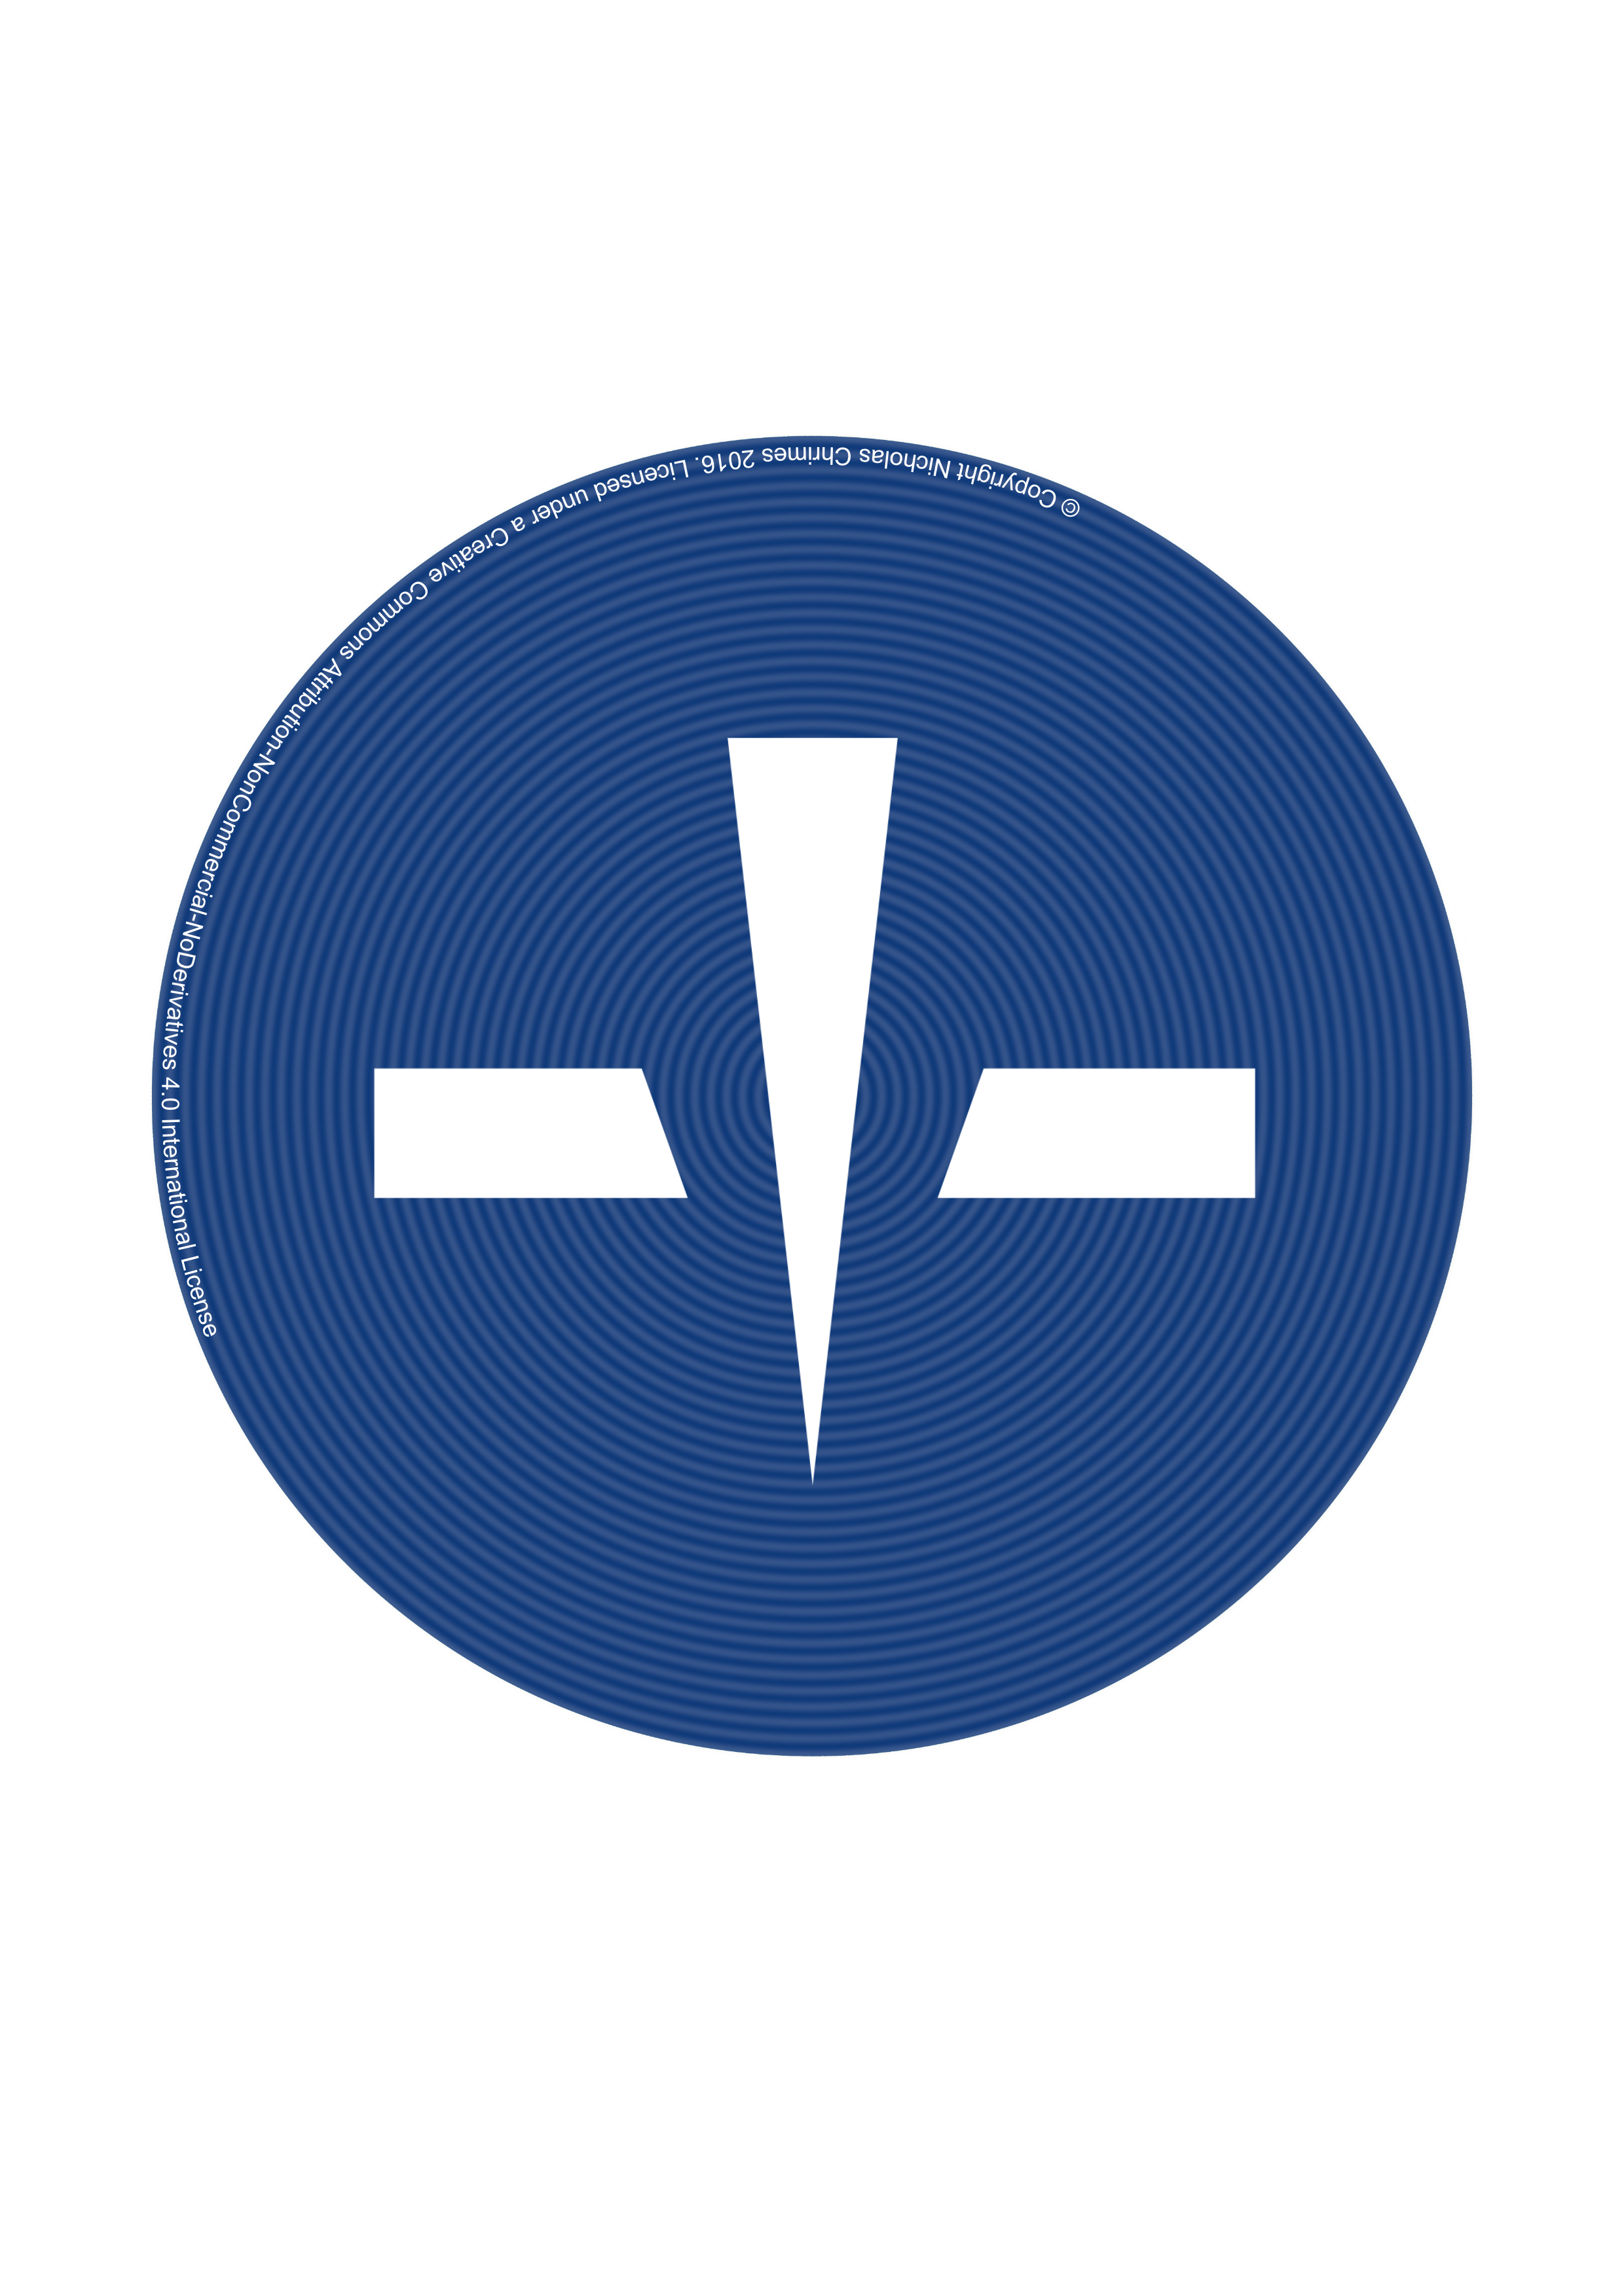 CICO Rescue Icon - without text